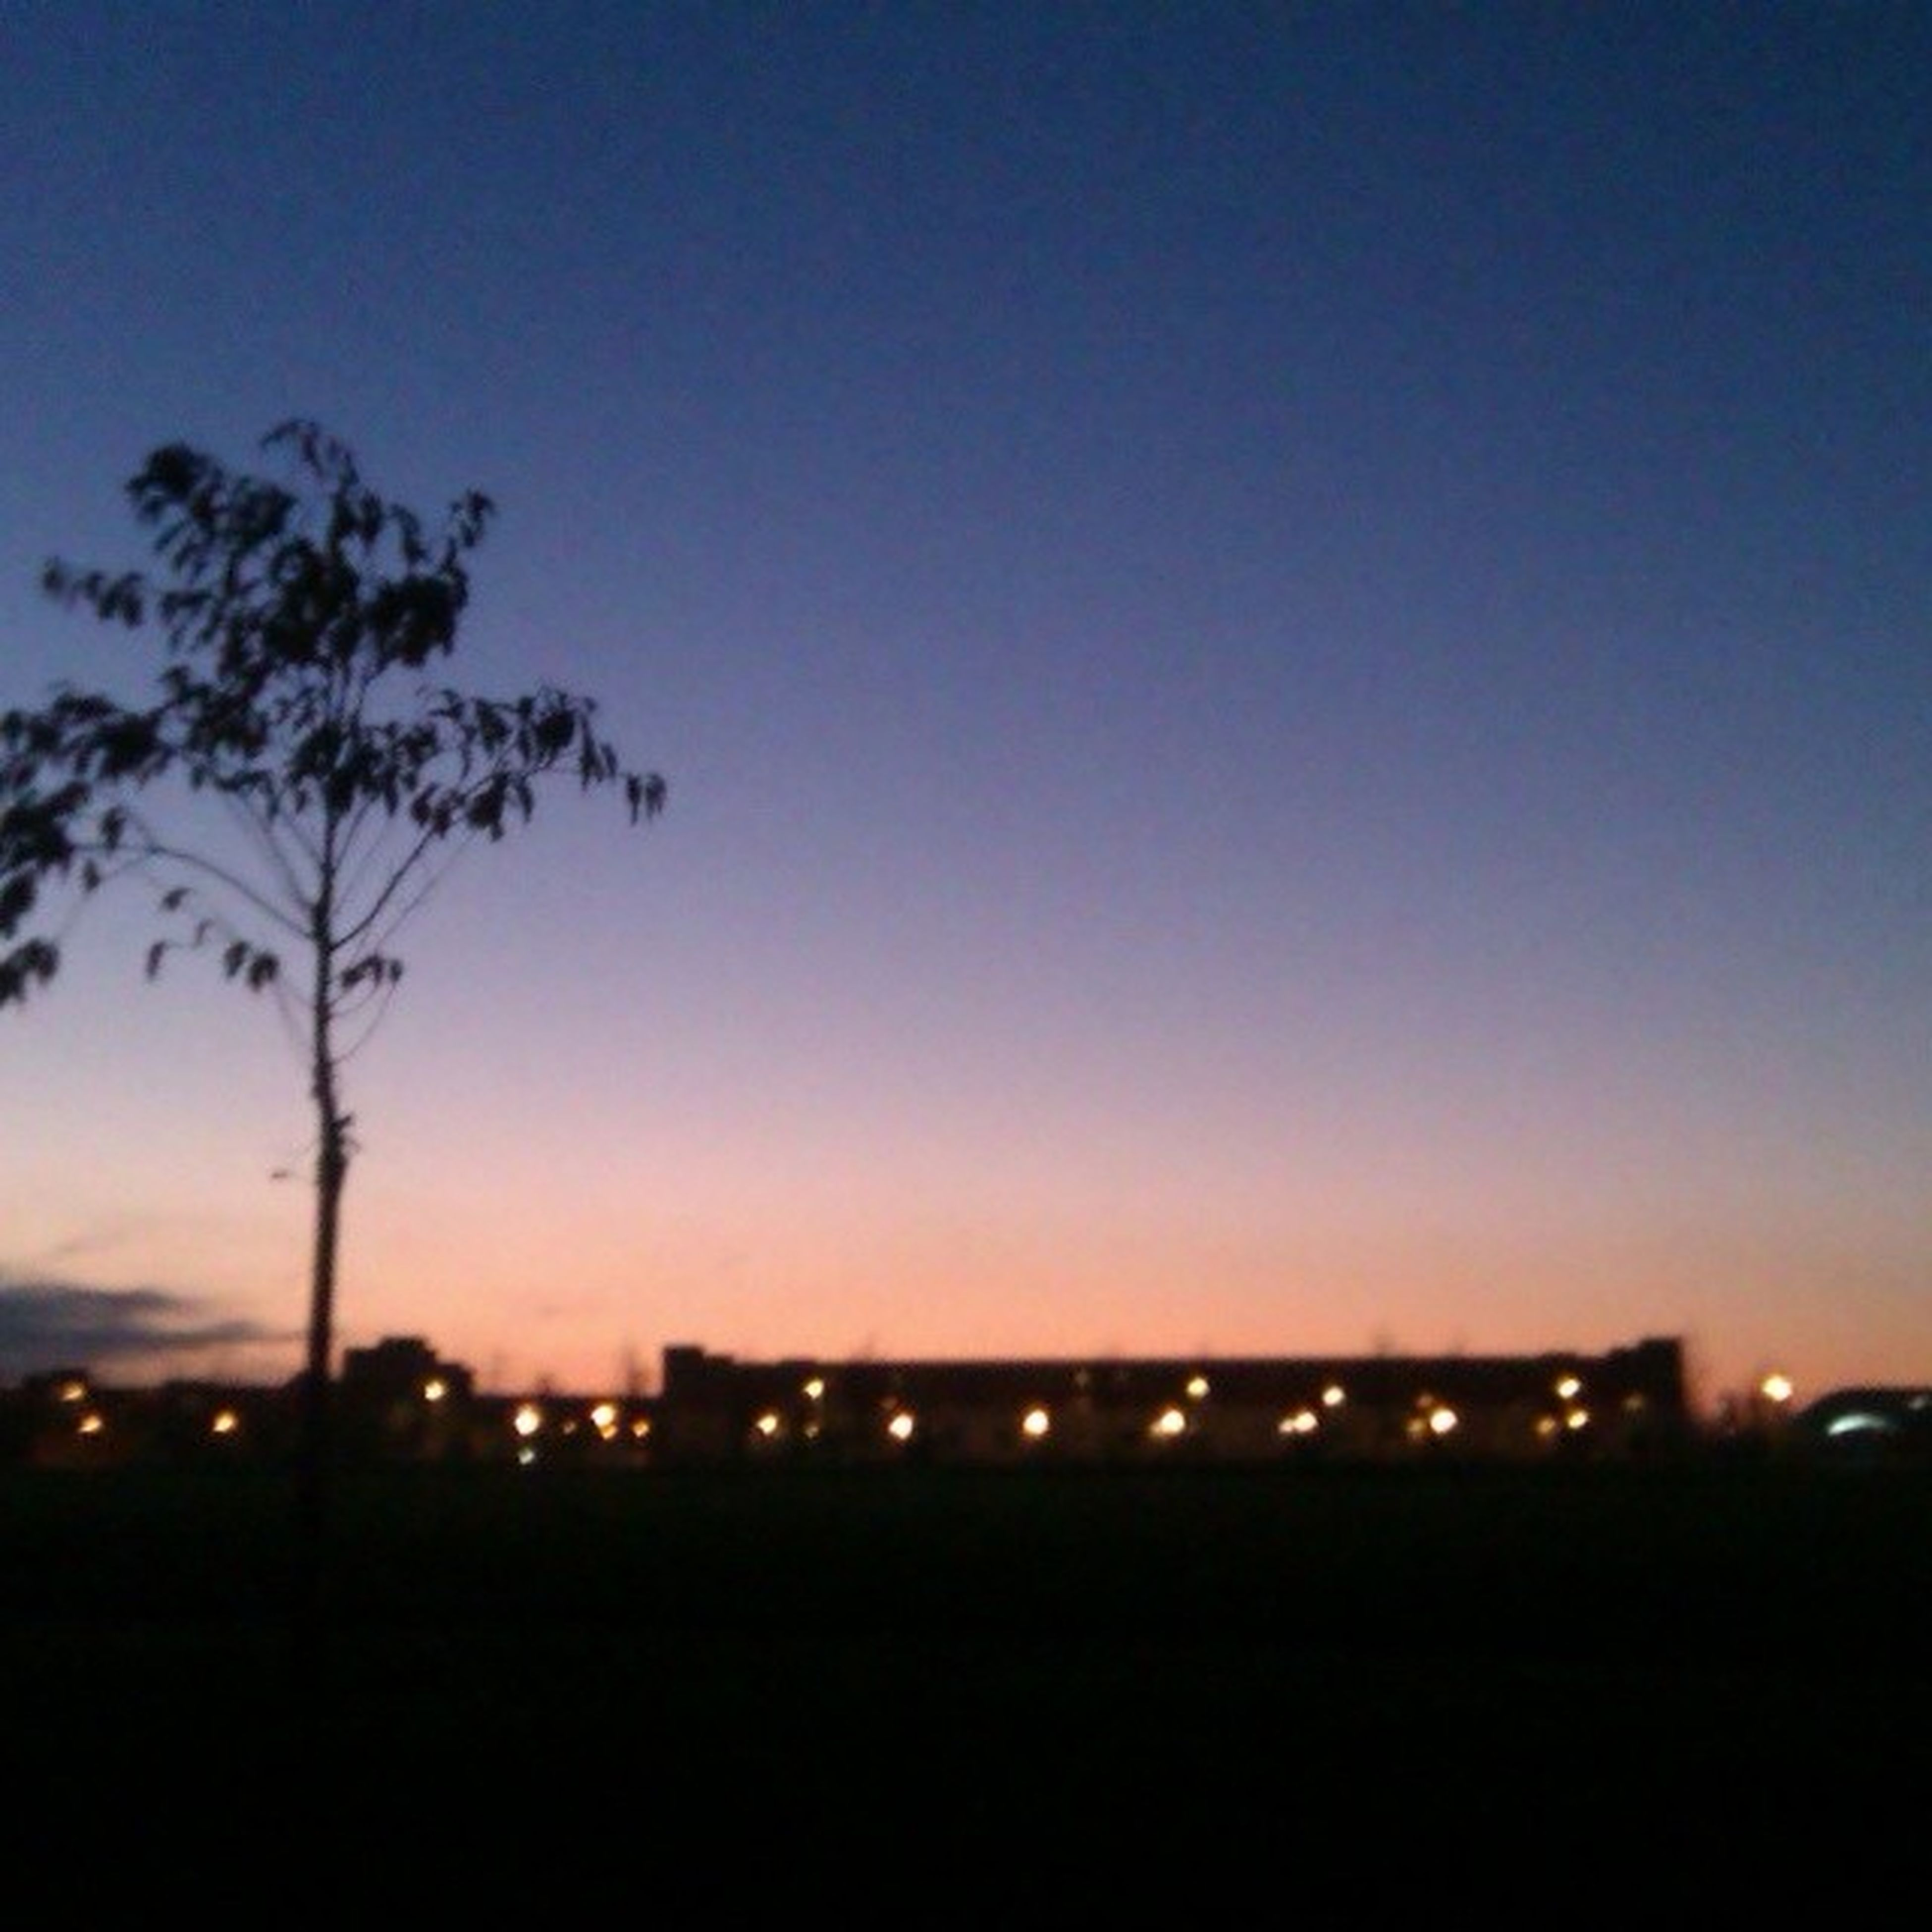 illuminated, silhouette, copy space, night, clear sky, sunset, dusk, dark, sky, tree, blue, outdoors, moon, built structure, building exterior, city, scenics, nature, no people, tranquility